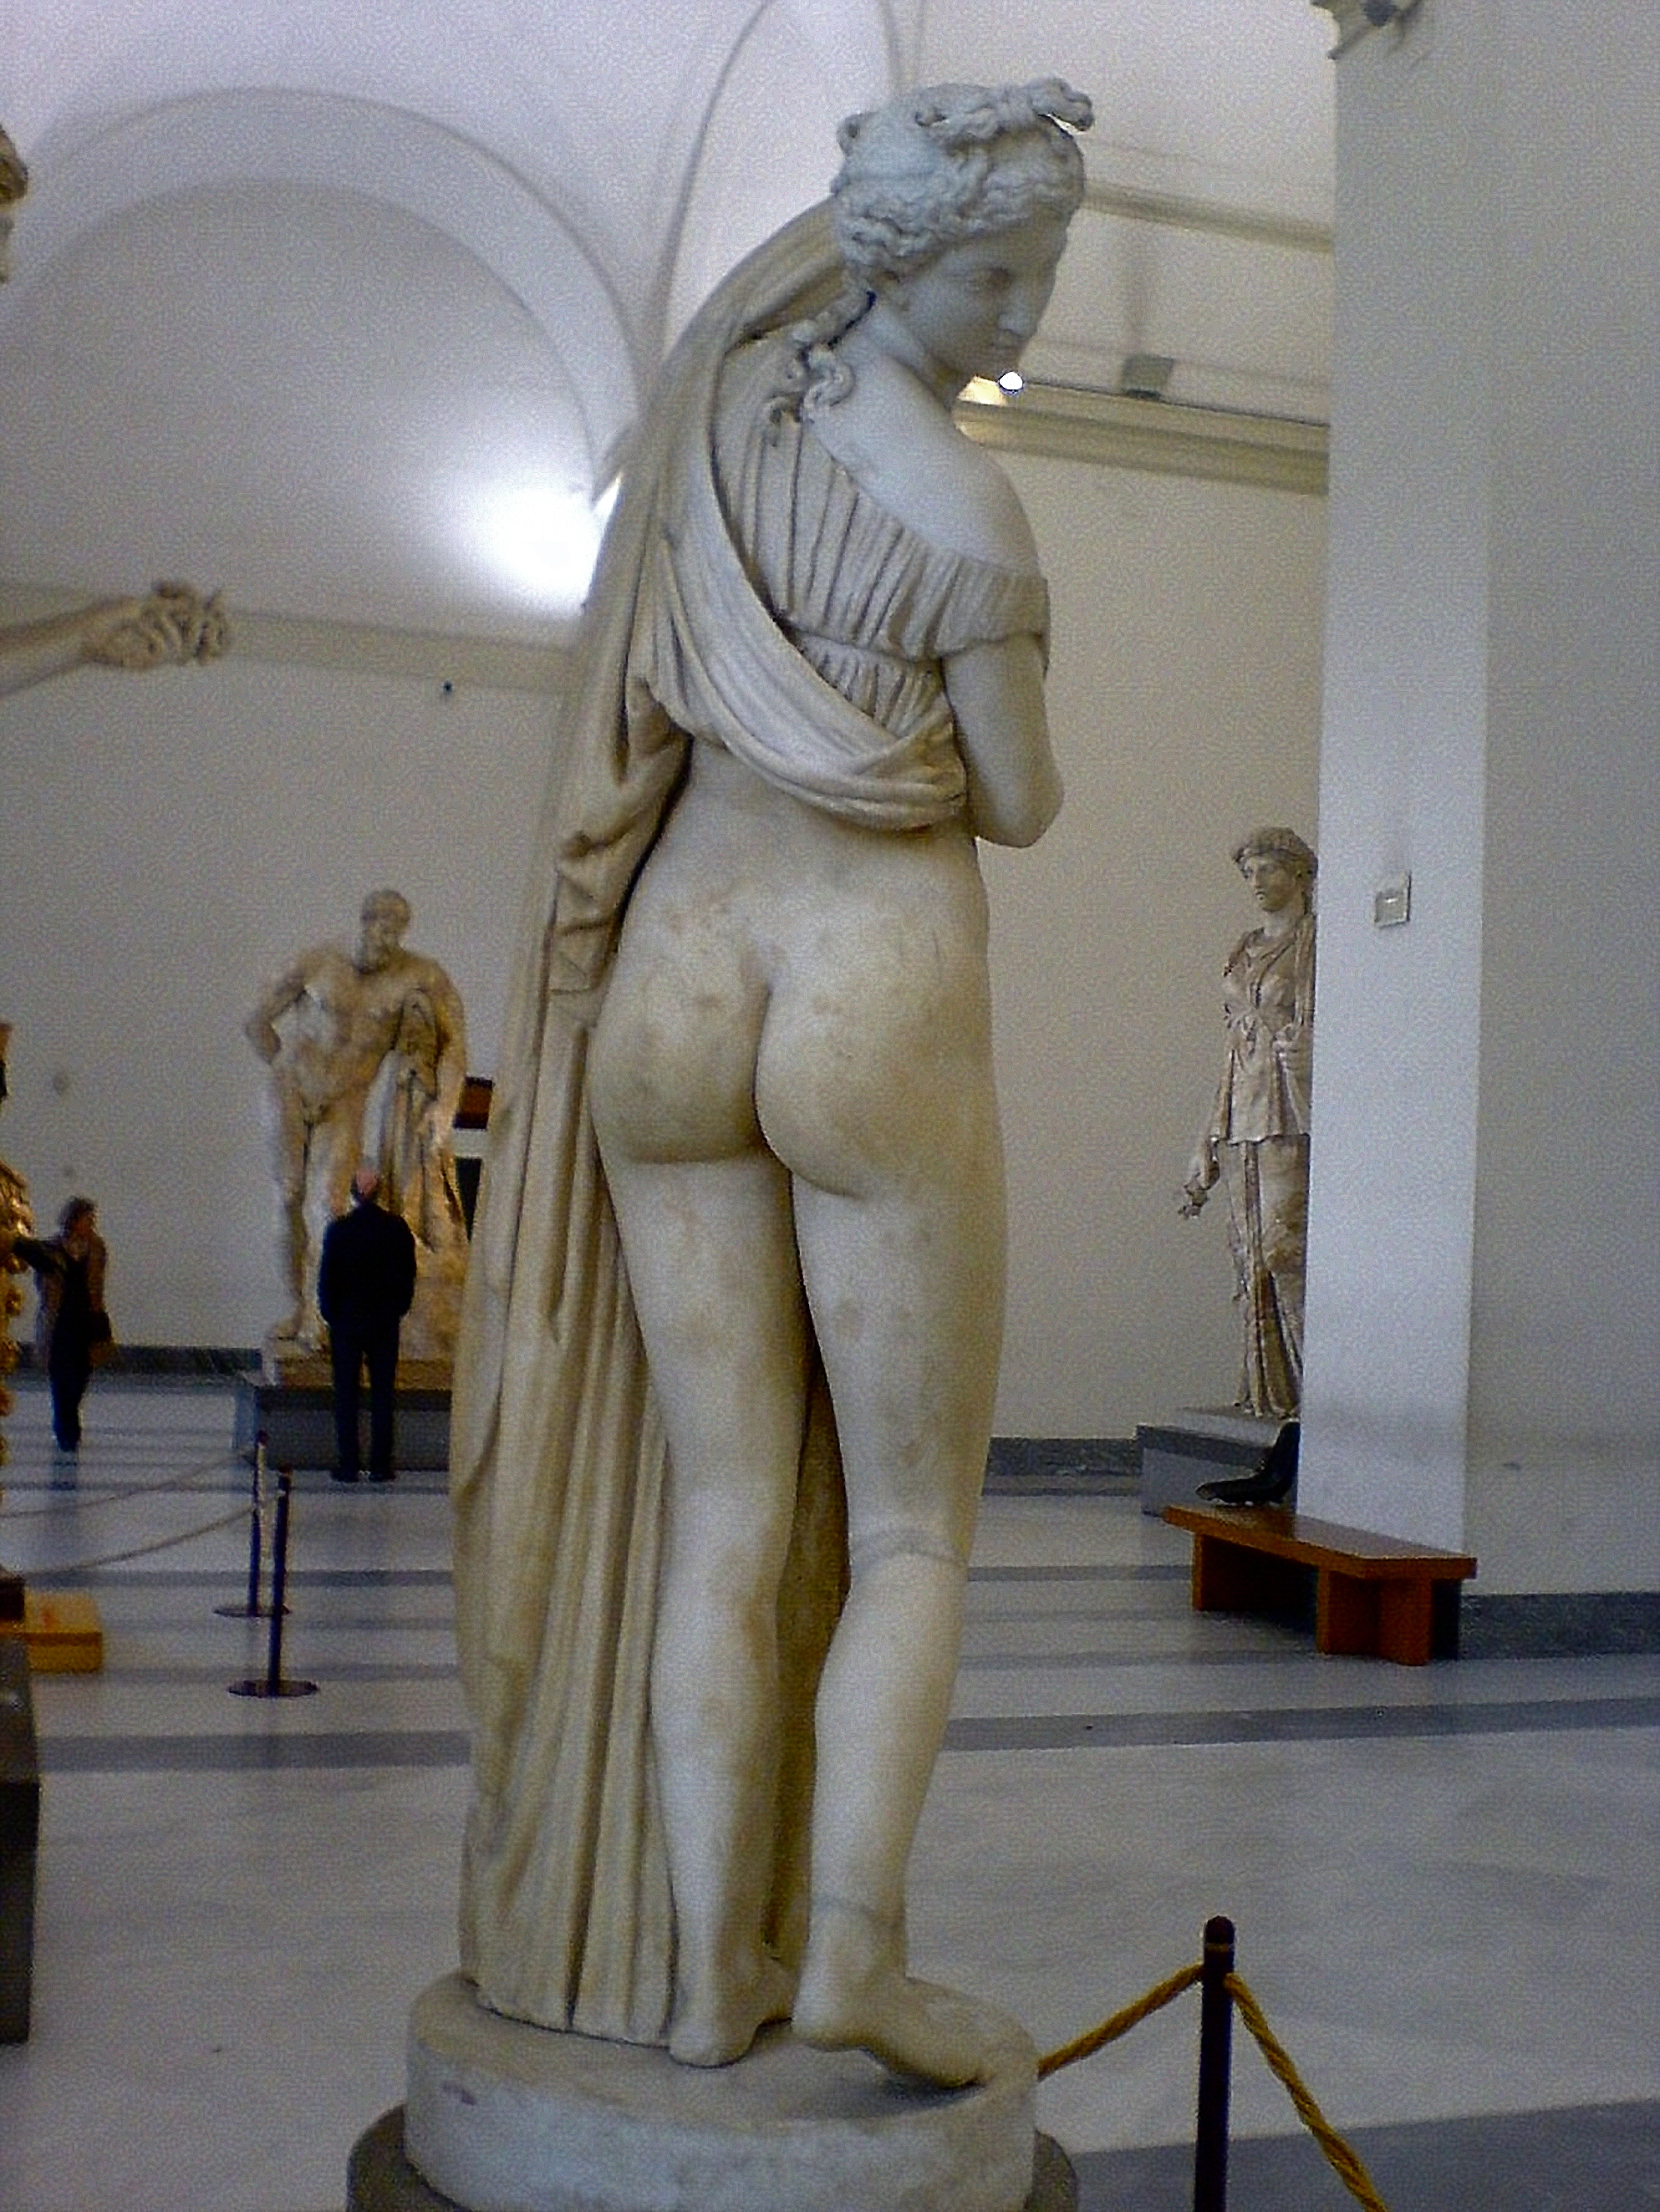 Restoration of the sculpture Venus Kallipygos in the Naples National Archeological Museum, restoration on the Greco-Roman / Hellenistic original added by the sculptor Carlo Albacini (1739? — after 1807)